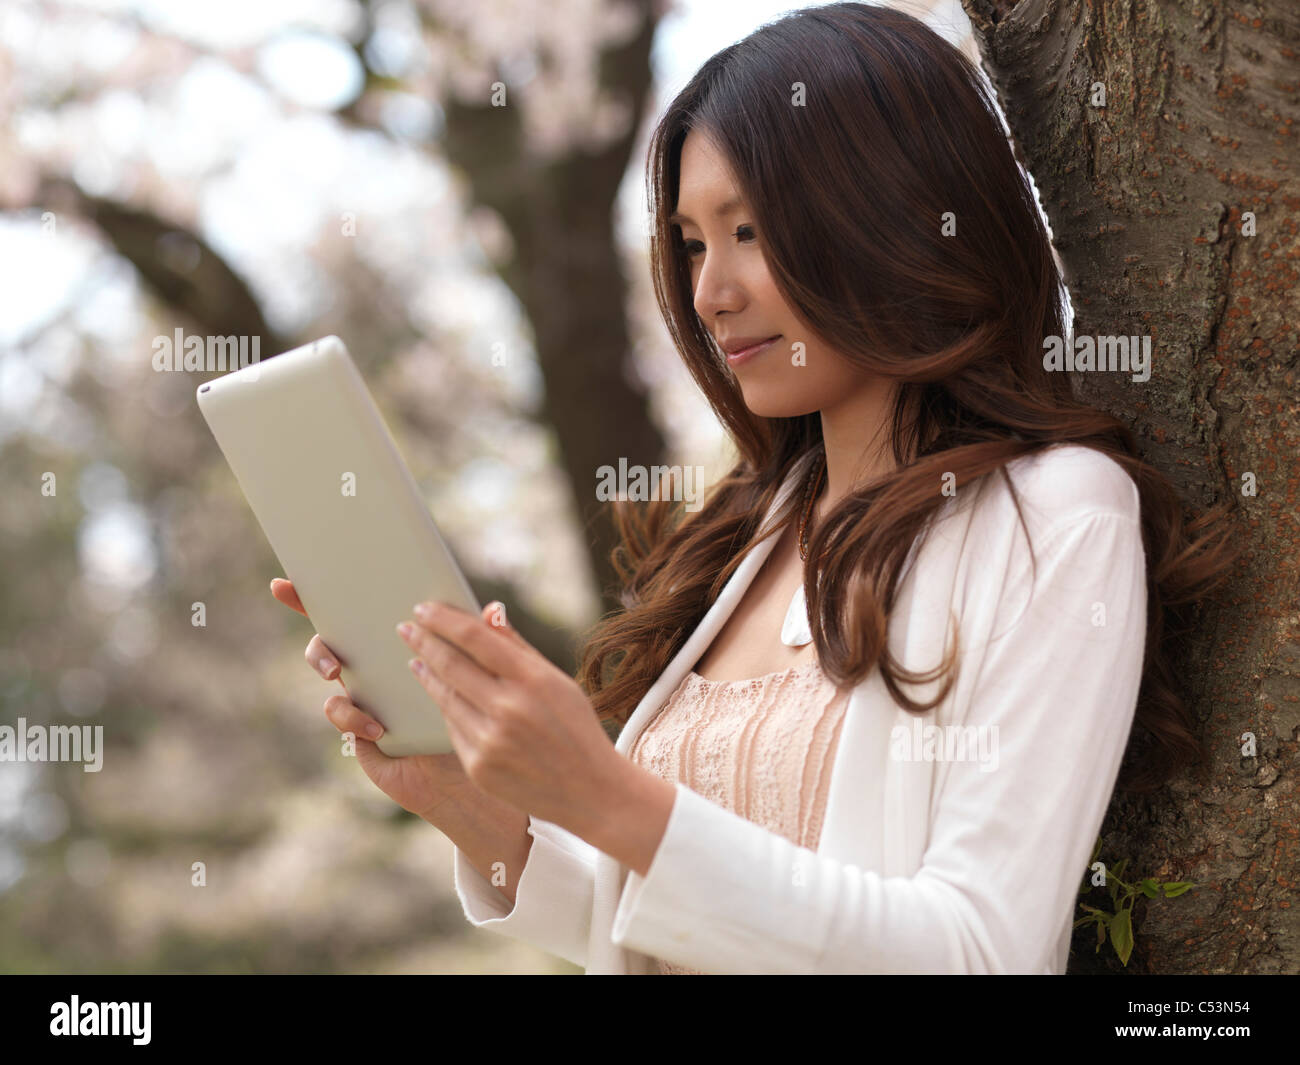 Young Asian woman with a tablet computer in a park under a cherry tree - Stock Image